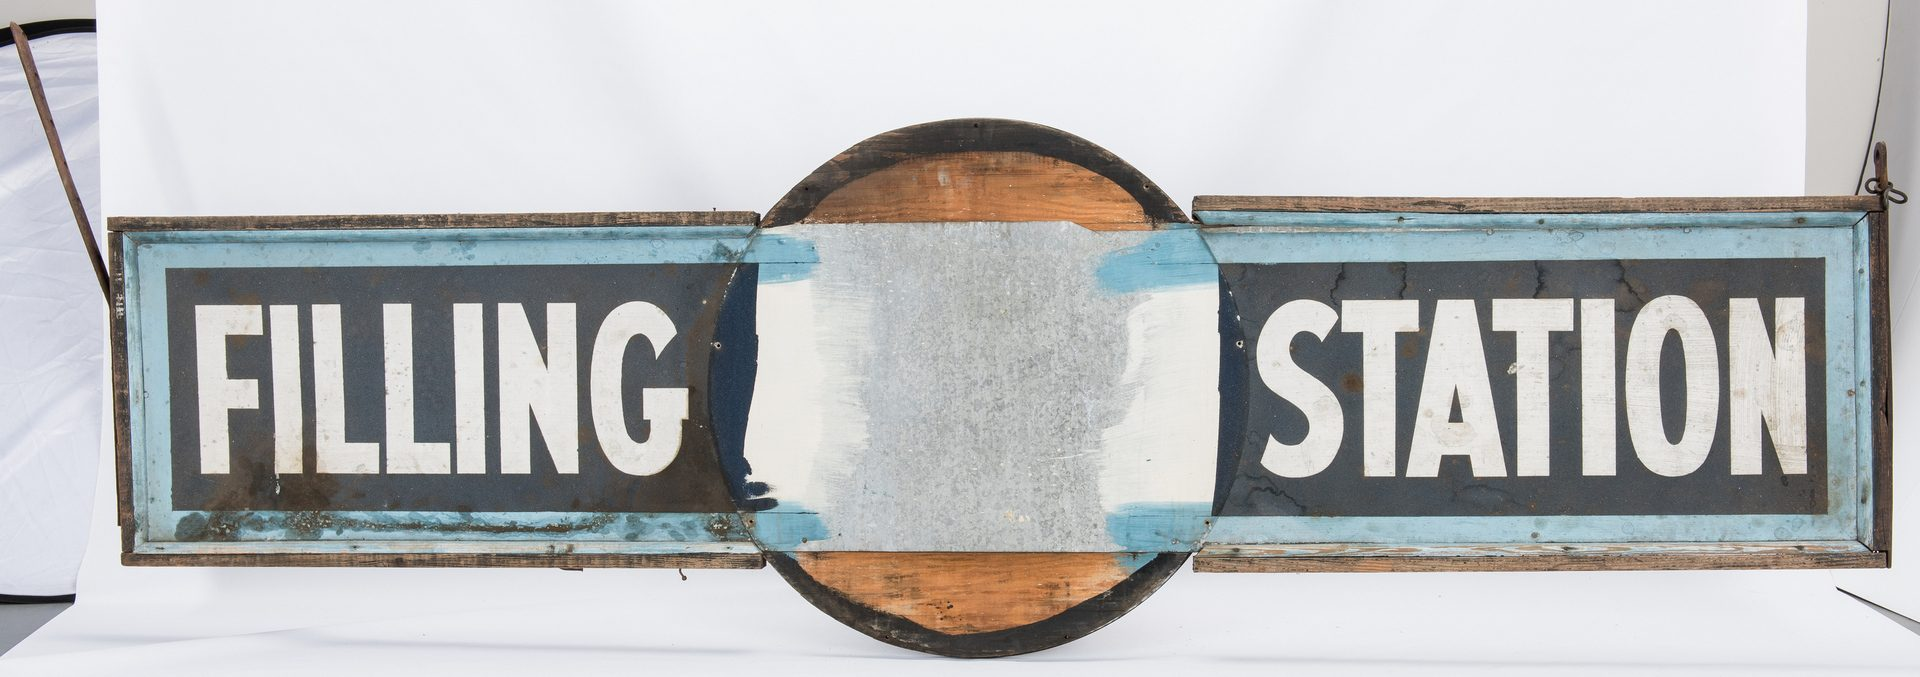 Lot 699: Stanocola Standard Oil Company Enameled Sign w/ Painted Wood Sign